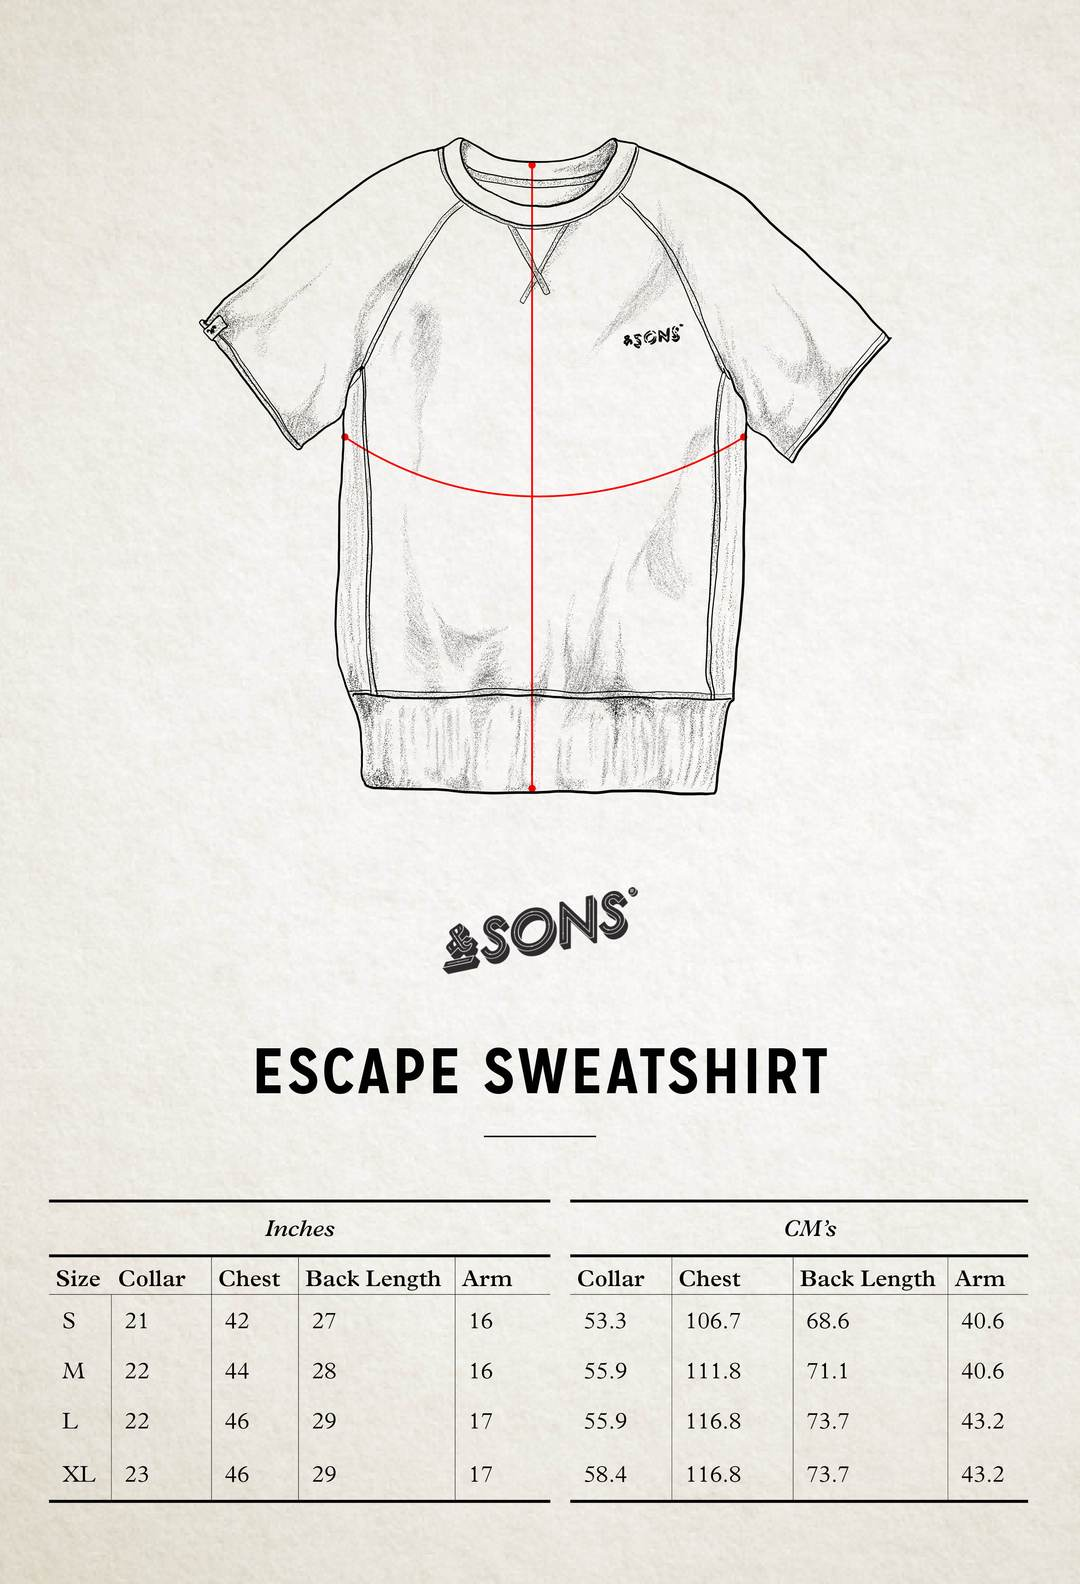 &SONS Escape Sweatshirt size guide